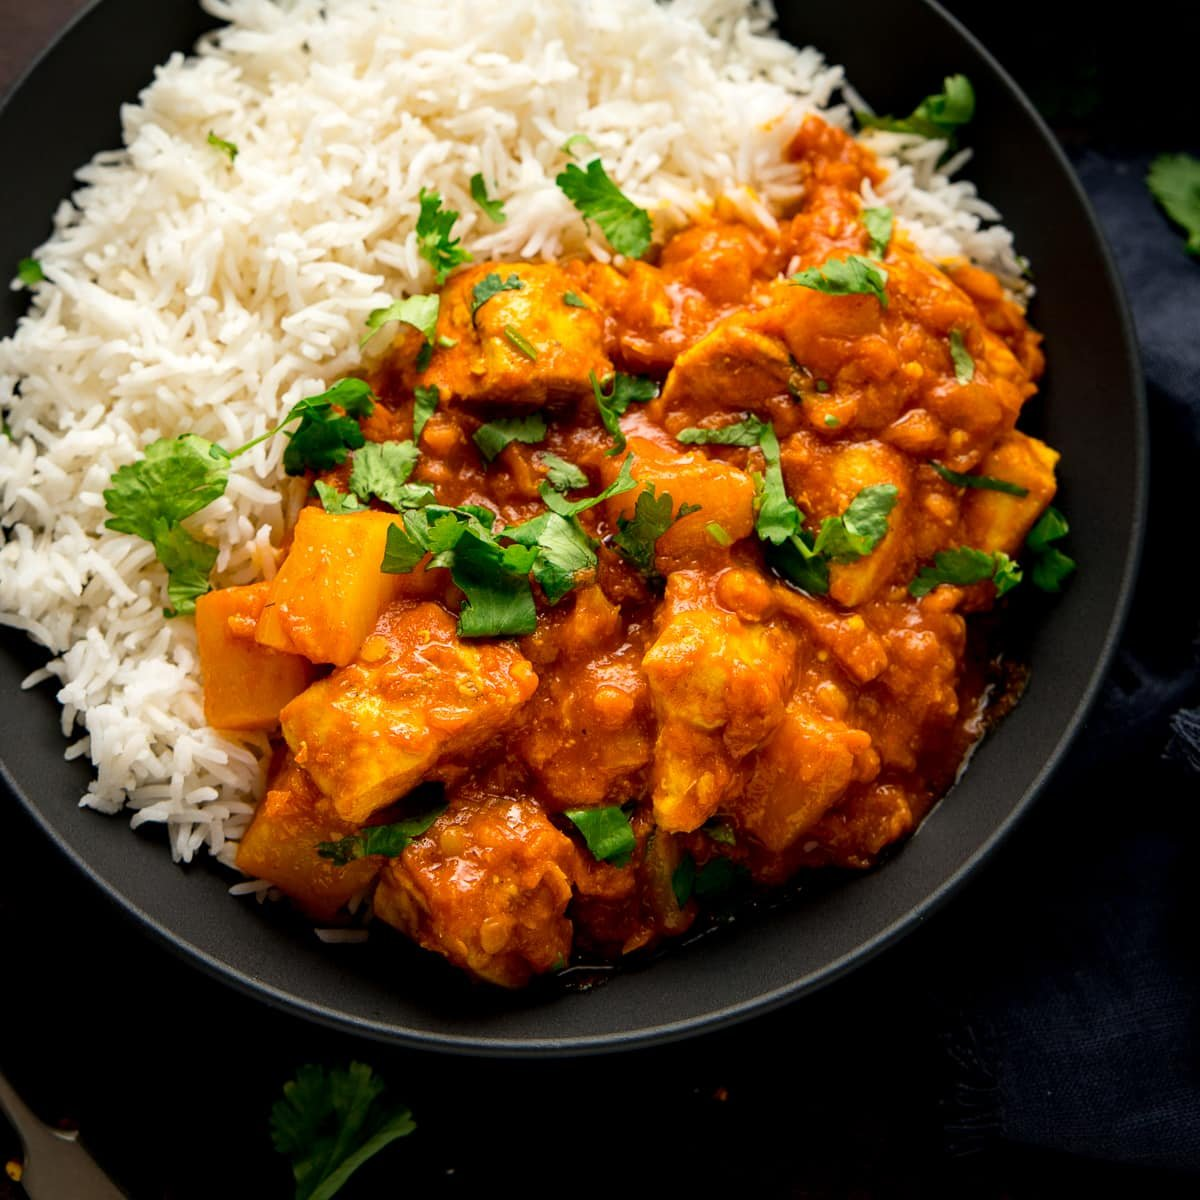 chicken dhansak with rice in a black bowl